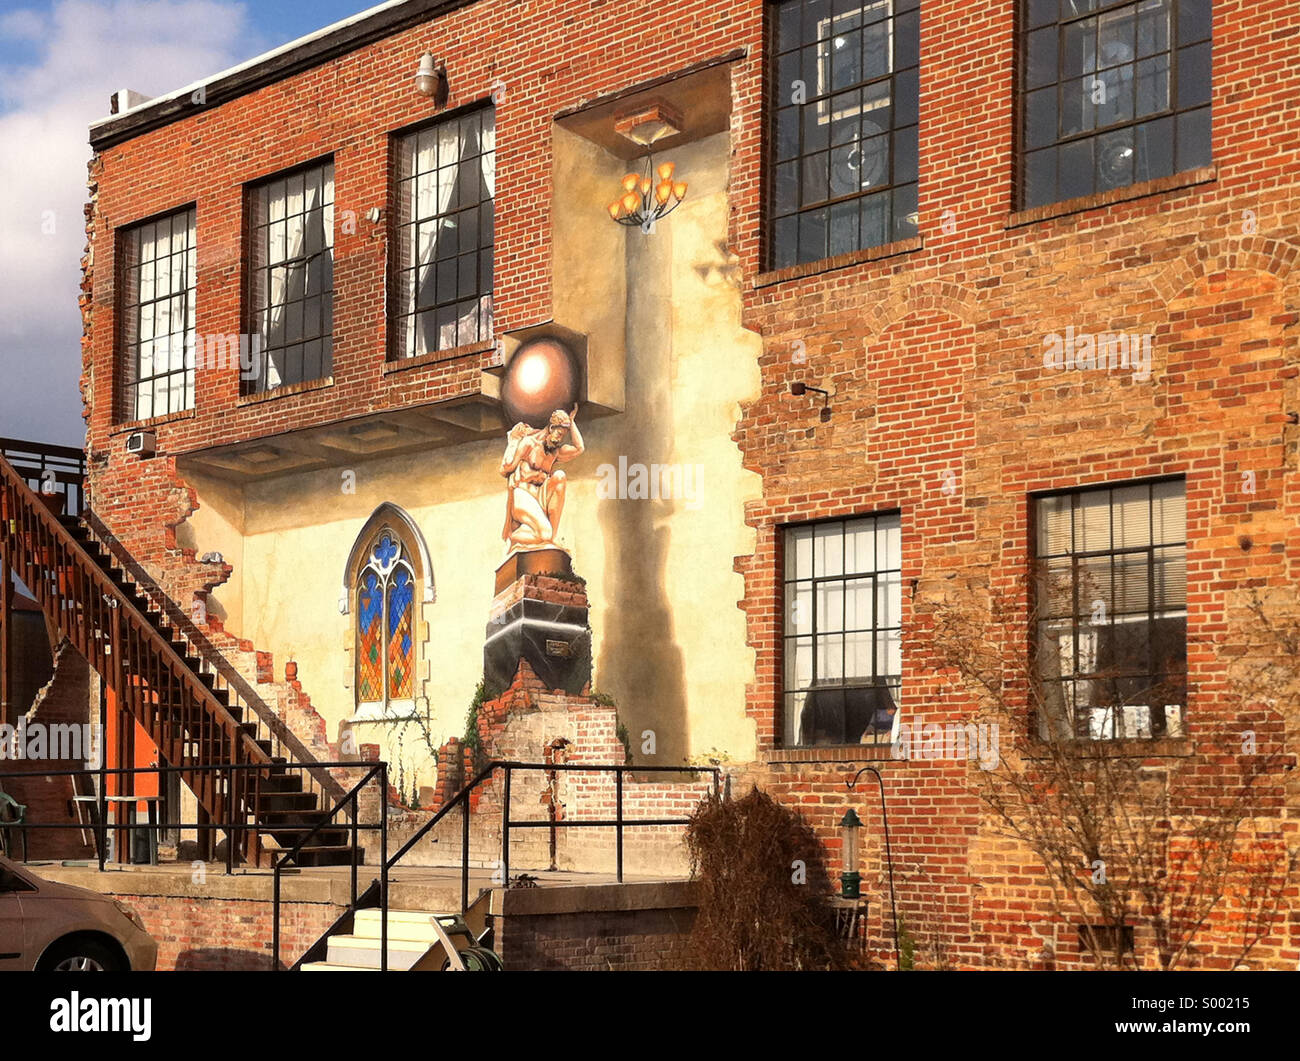 Trompe l'oeil (fool the eye) wall painting on a building in the River Arts District of Asheville, North Carolina. - Stock Image